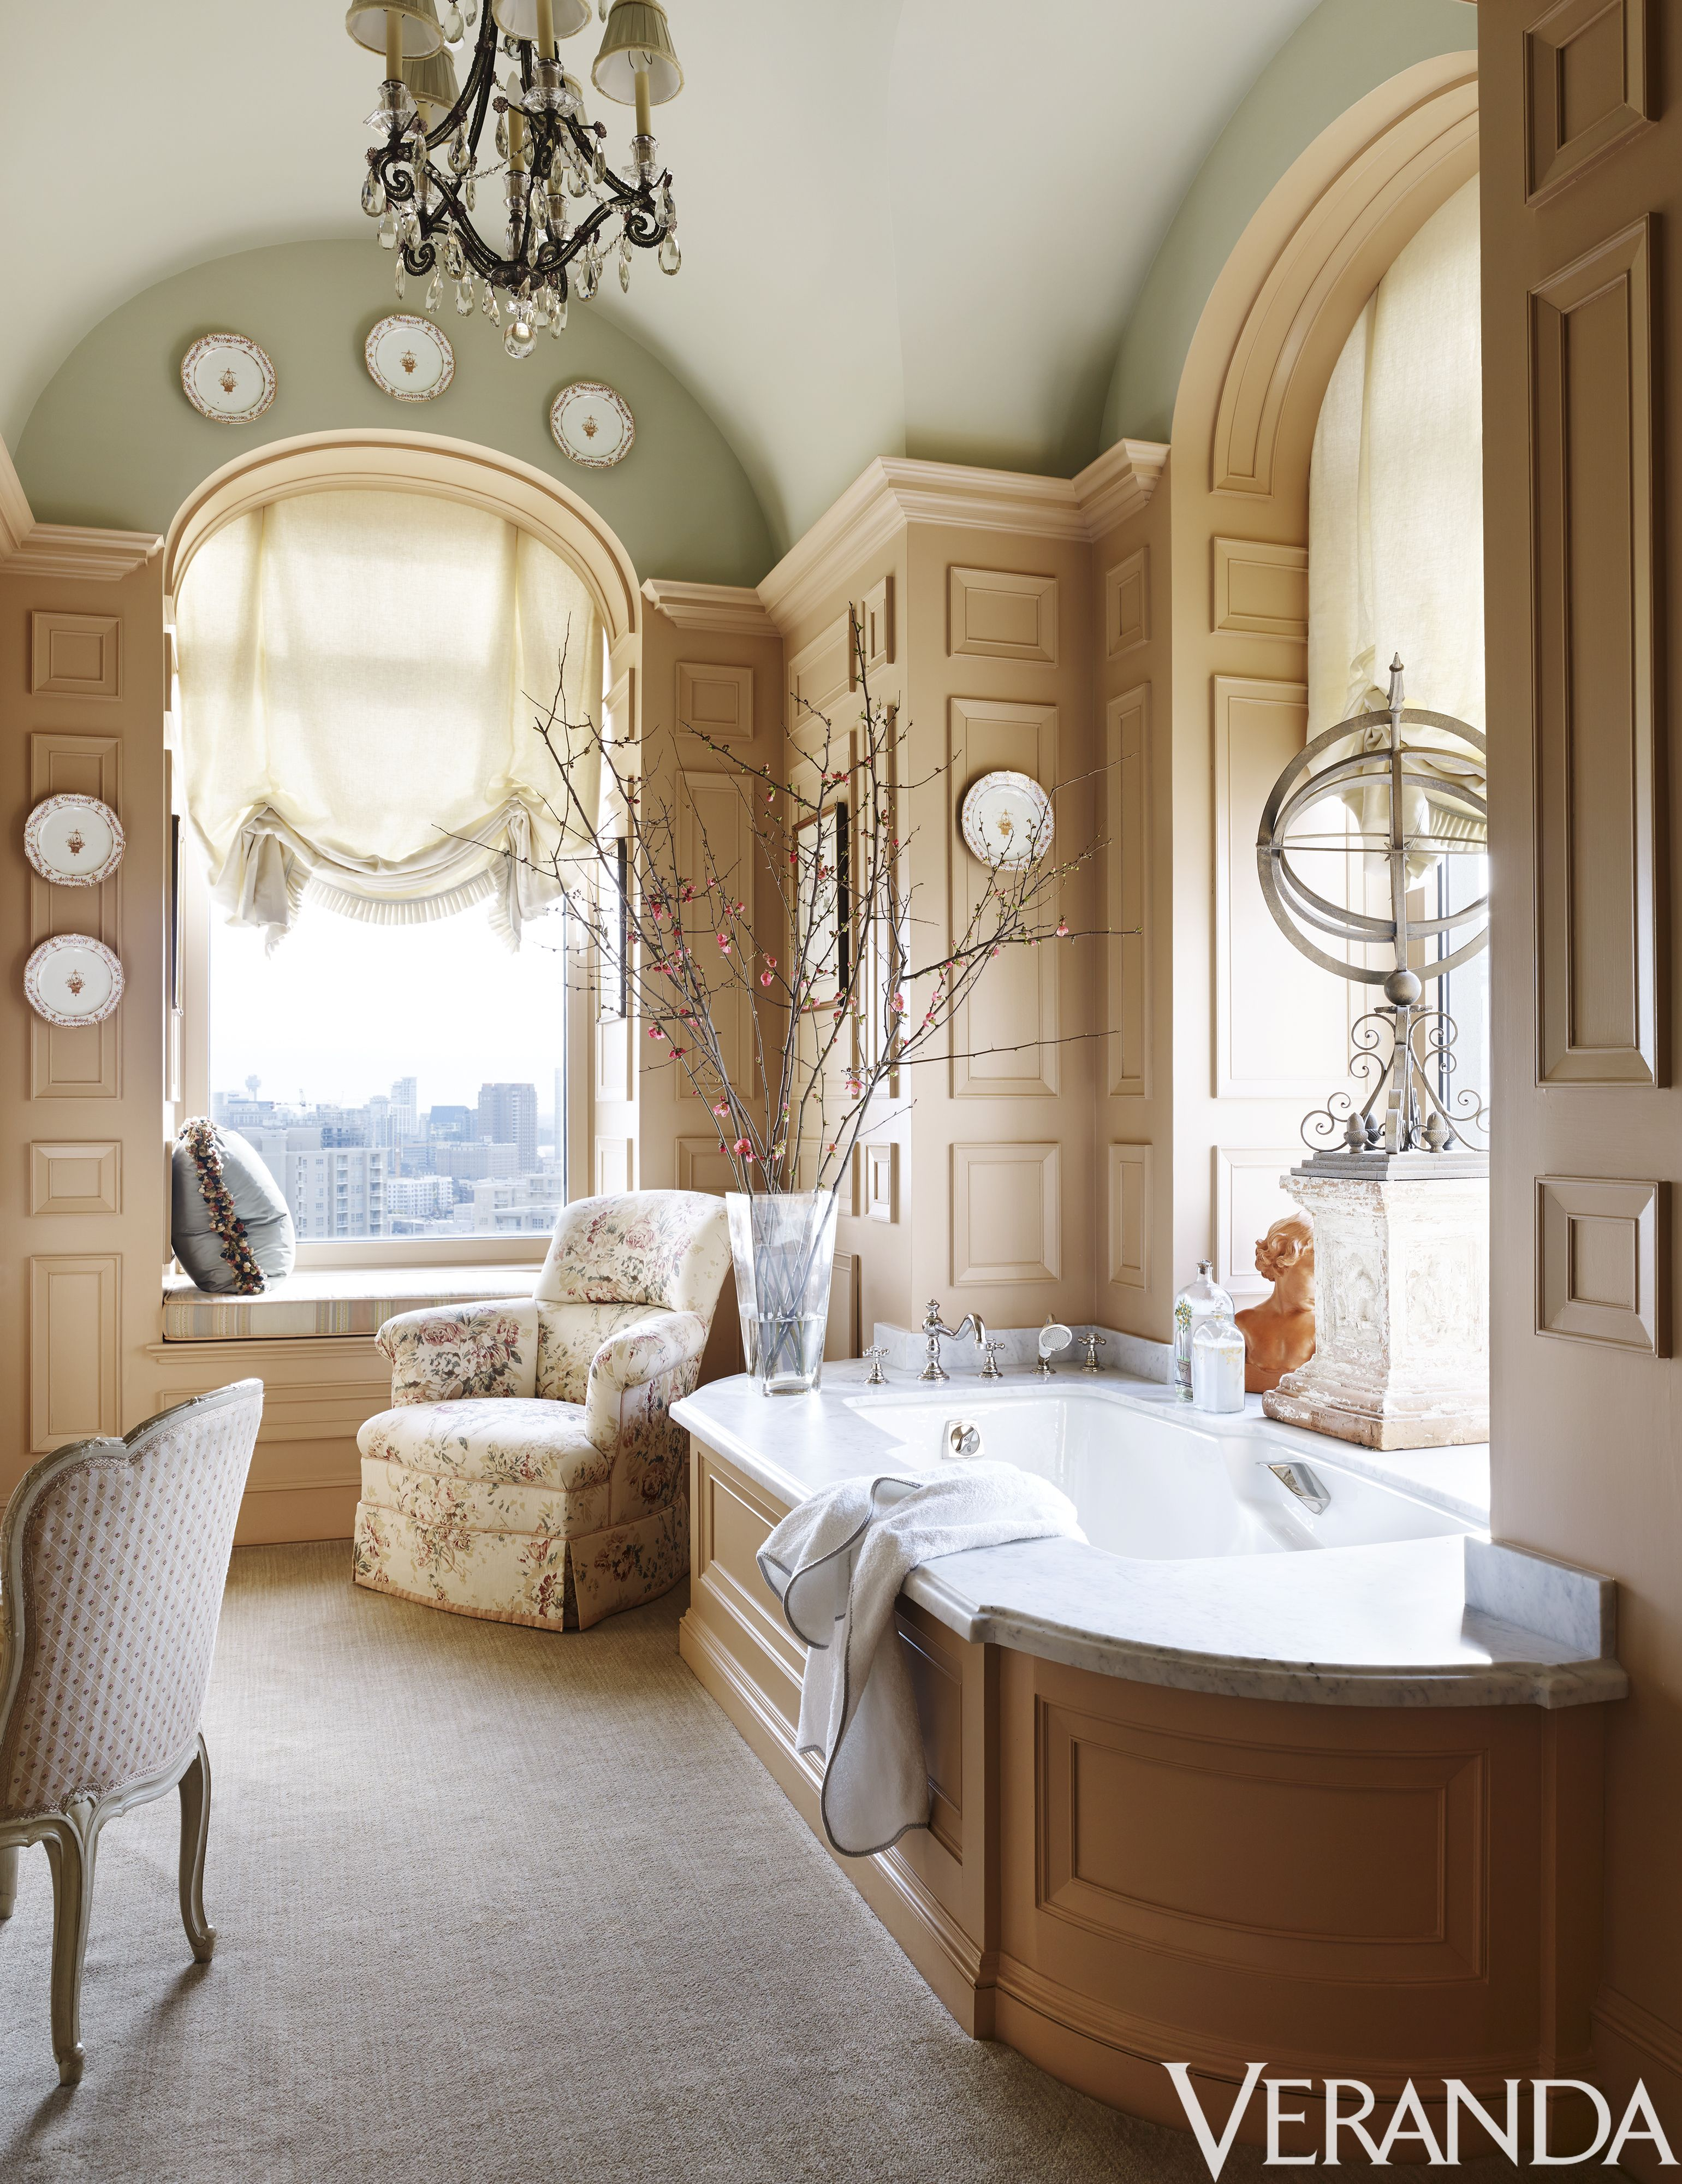 Old Hollywood Glamour Bathroom Decor 35+ Best Bathroom Design Ideas - Pictures of Beautiful Bathrooms